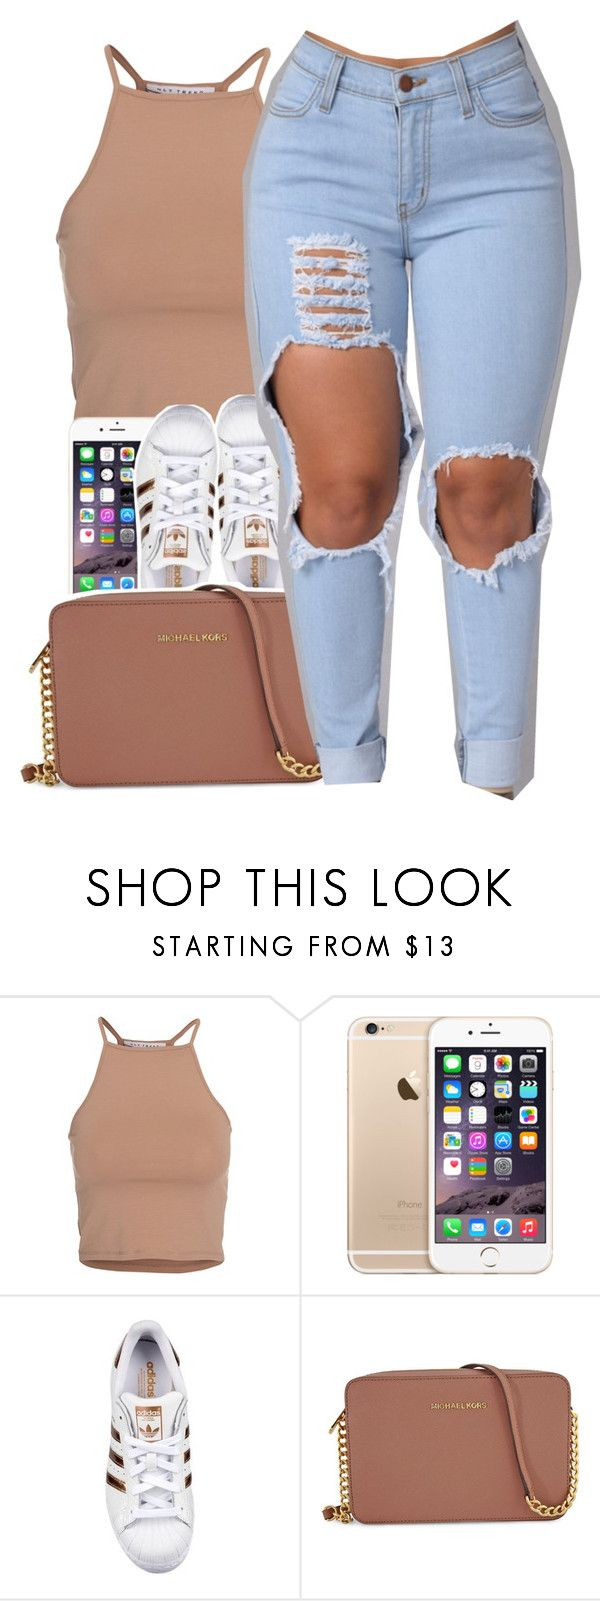 """Untitled #411"" by uniquee-beauty ❤ liked on Polyvore featuring NLY Trend, adidas Originals and Michael Kors"